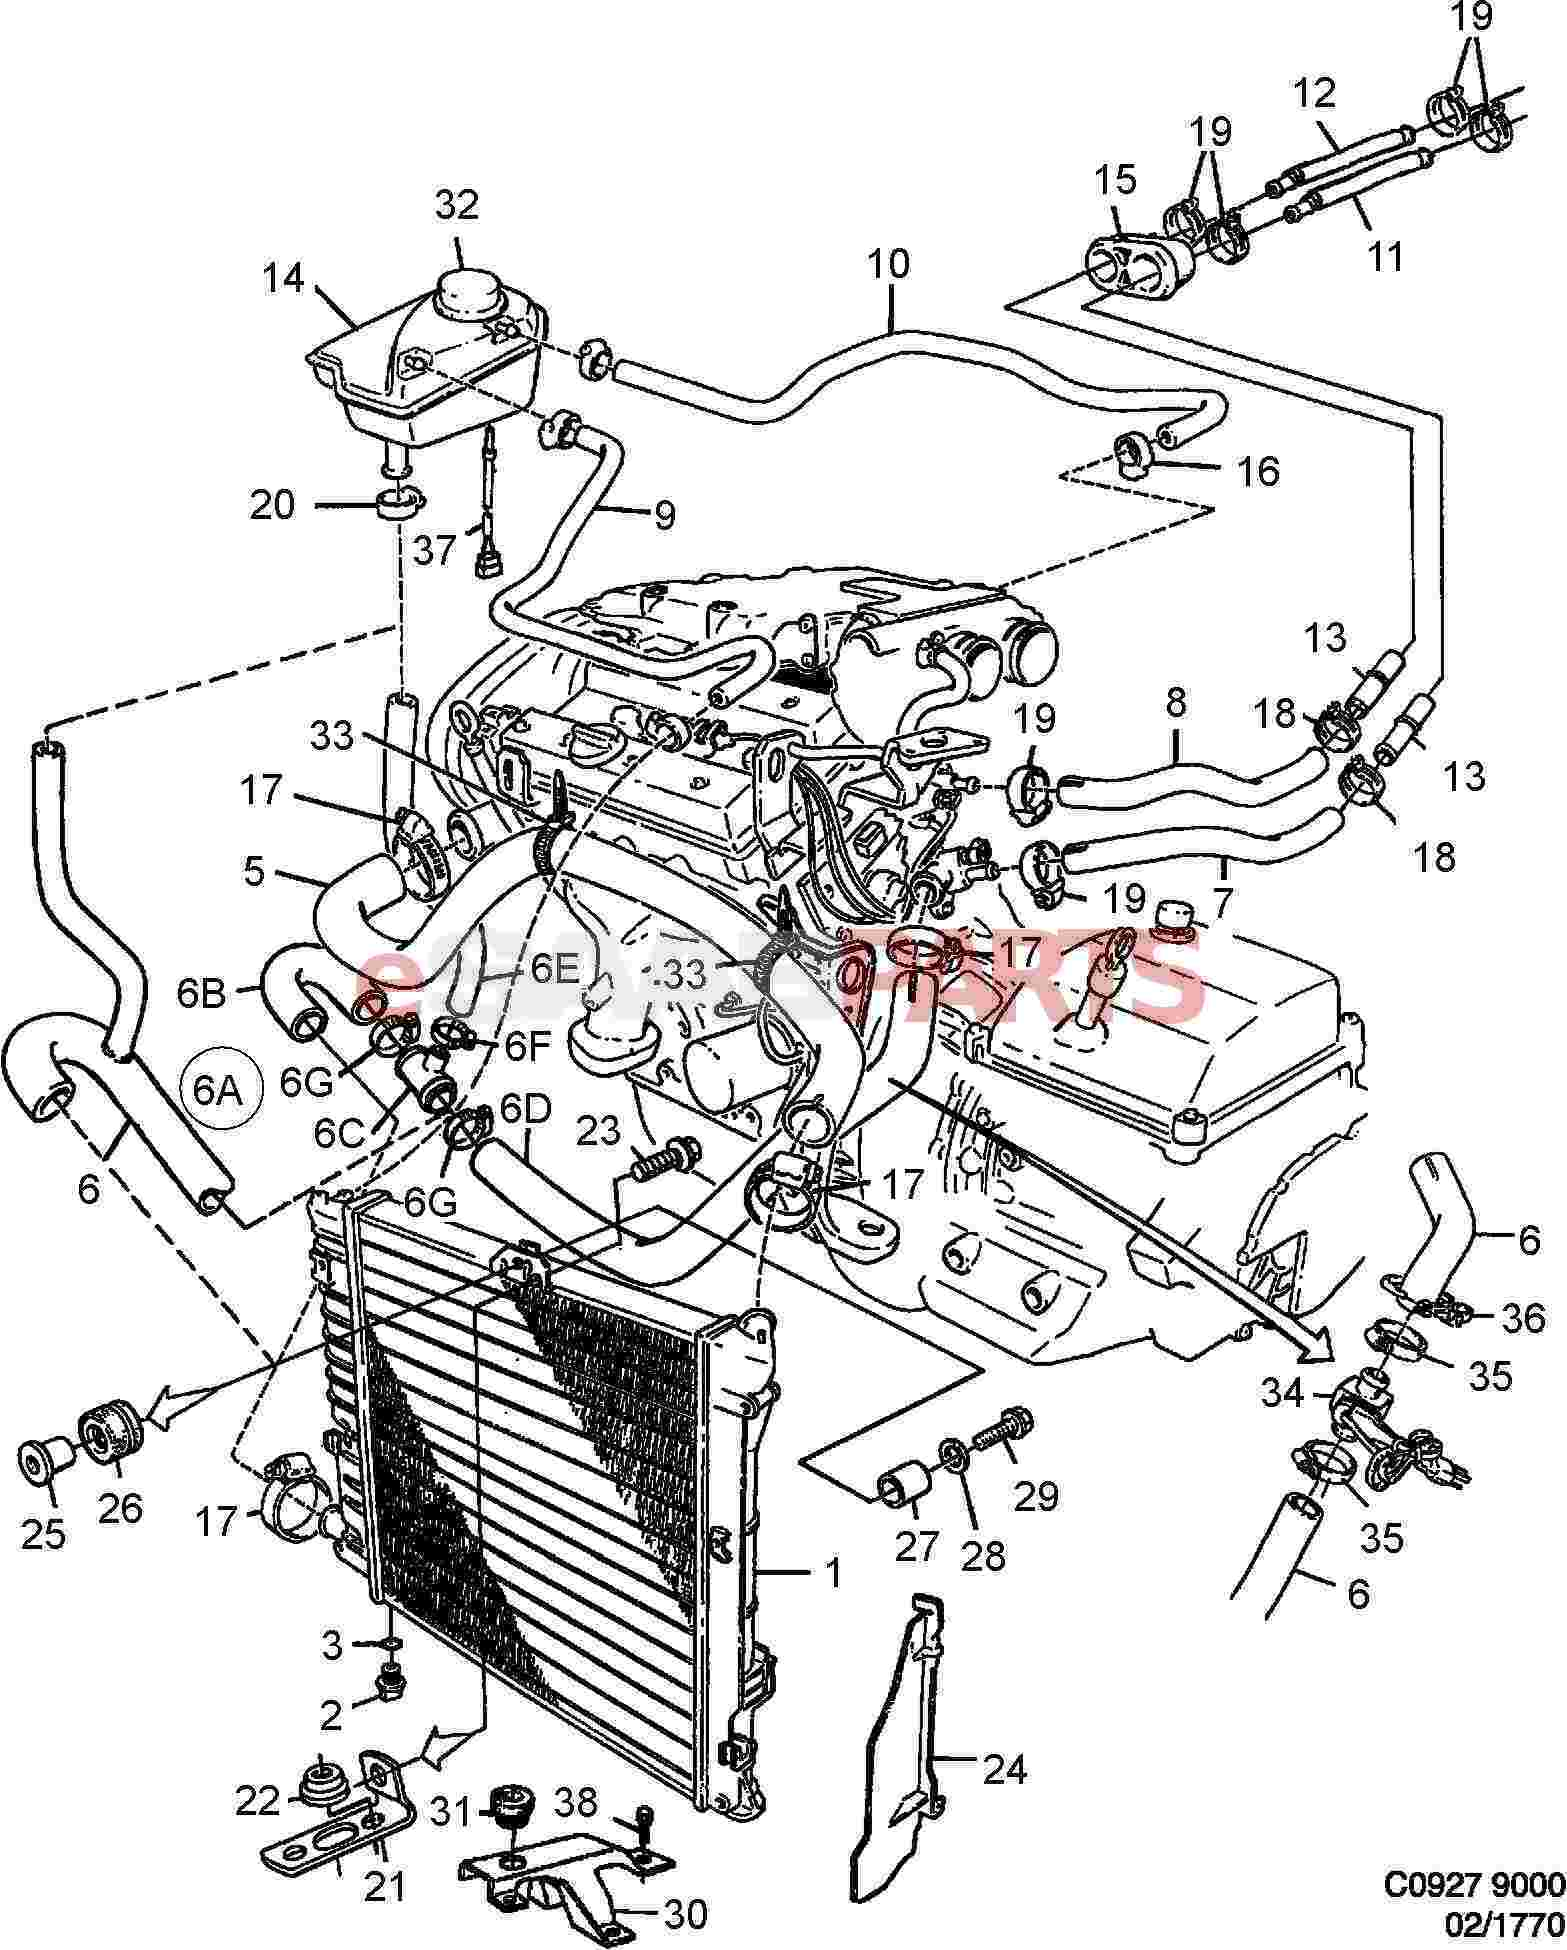 00 Audi Tt Coolant Hose Diagram Reinvent Your Wiring 2001 Saab 900 Electrical Diagrams U2022 Rh 45 77 189 151 Parts